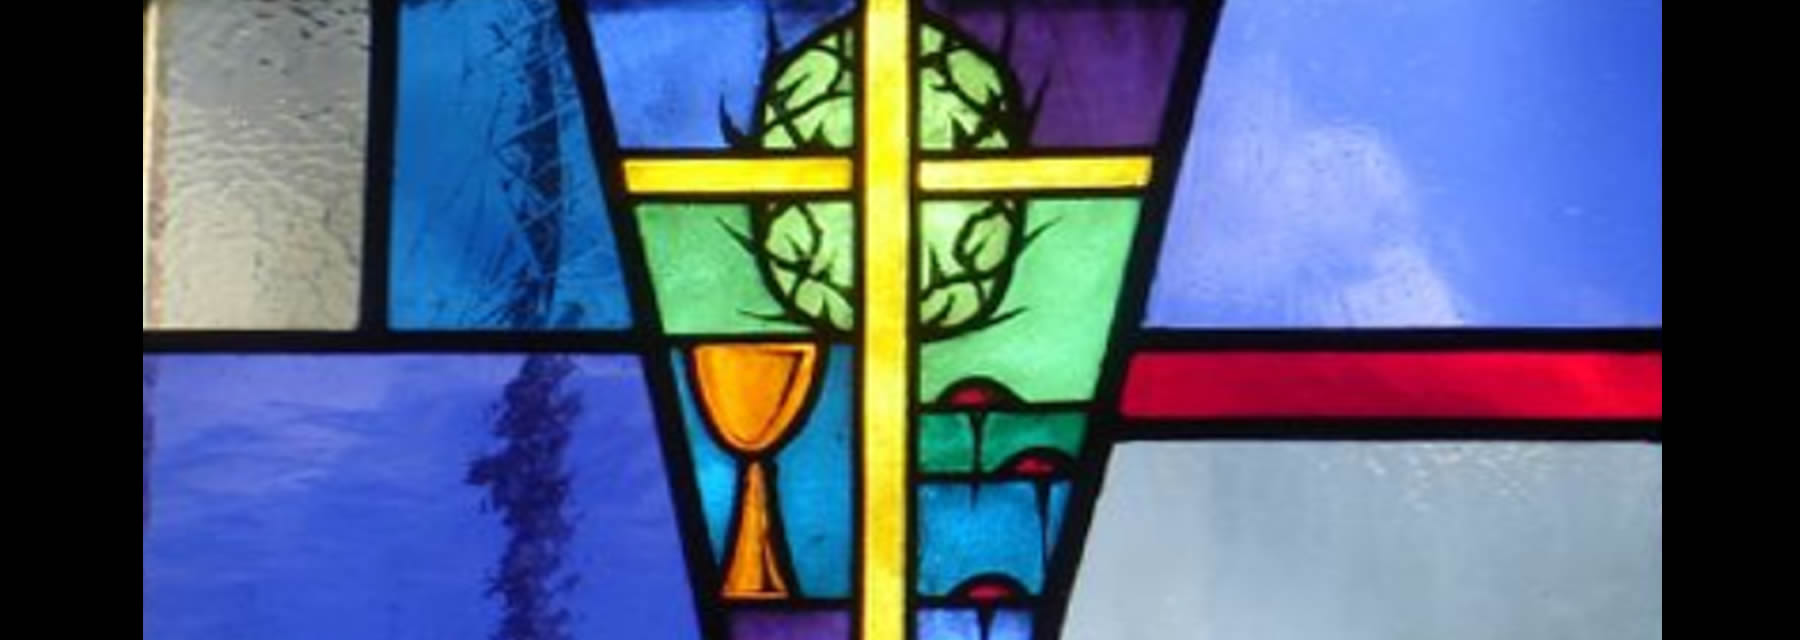 Holy Cross Lutheran Church, O'Fallon, Missouri